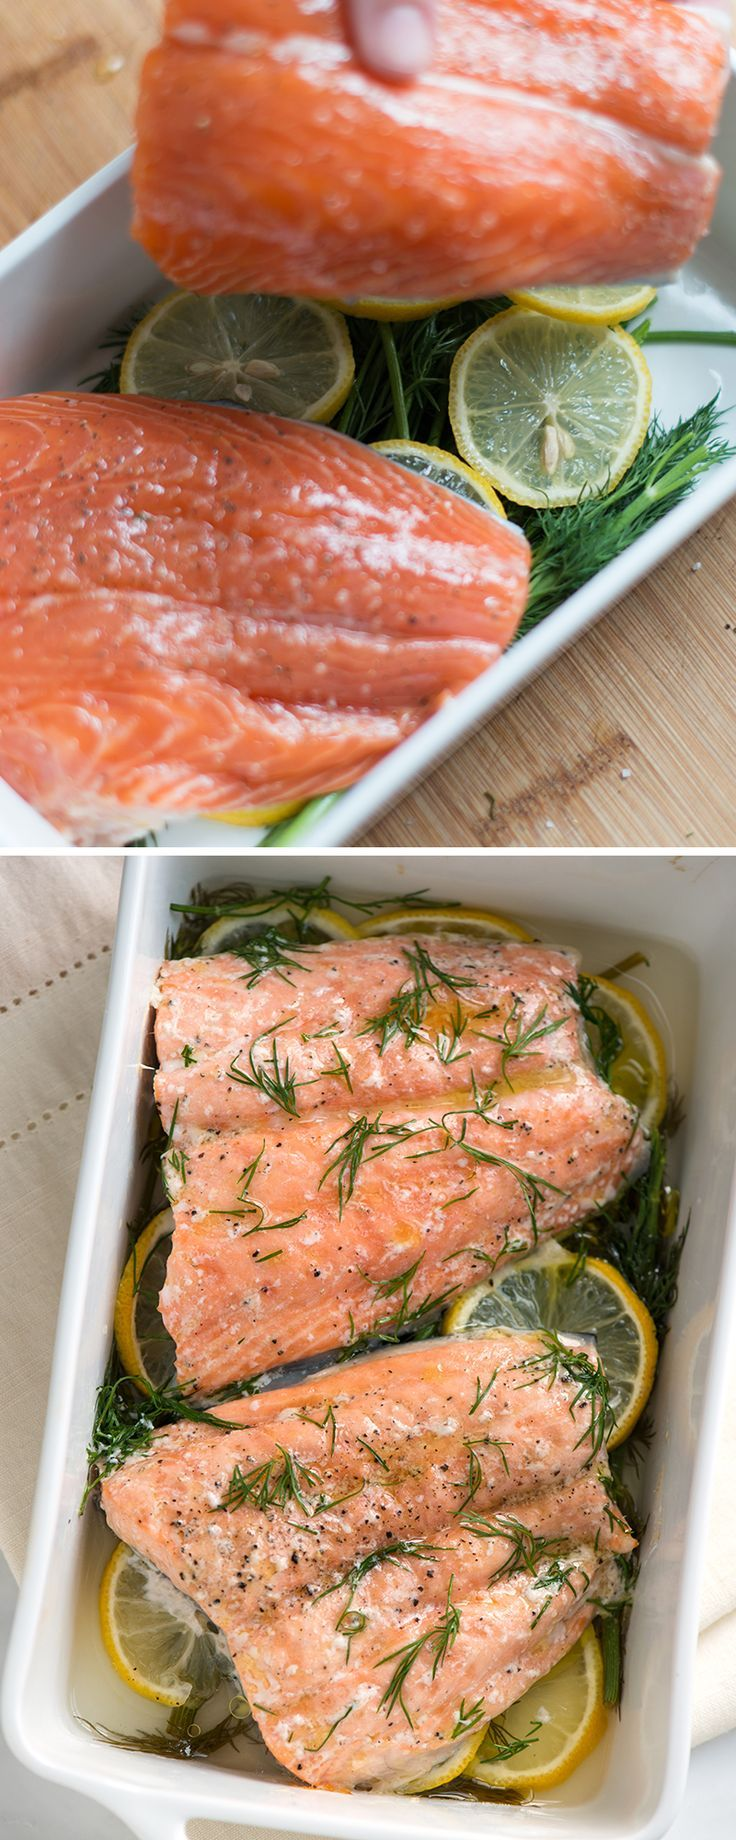 A quick and easy recipe for oven baked salmon fillets over lemon slices and fresh dill. You can even make this in less than 30 minutes. From inspiredtaste.net | @inspiredtaste